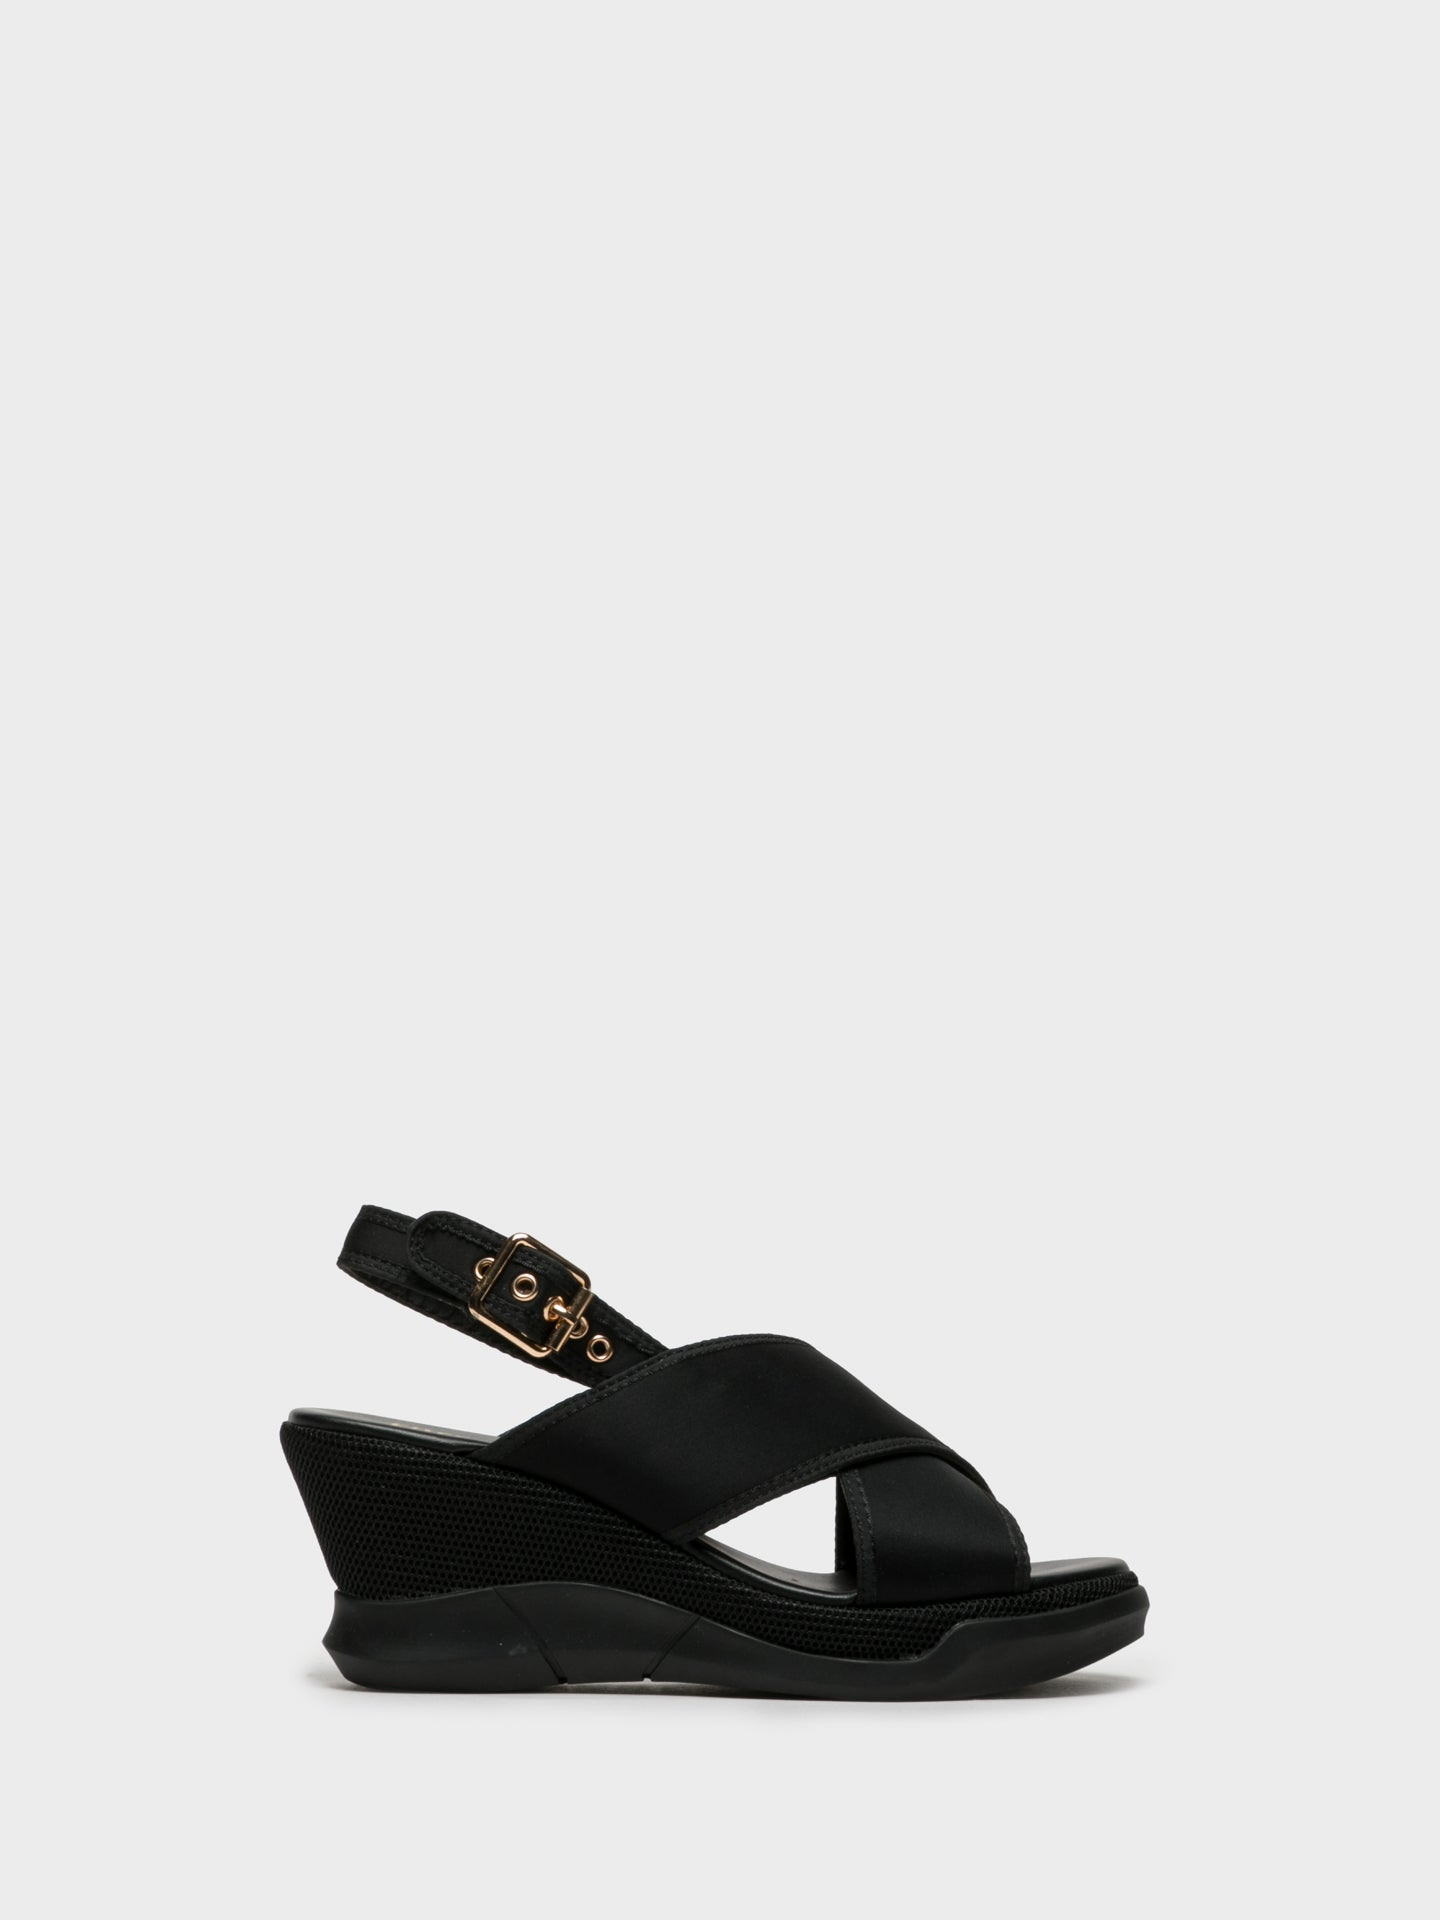 Foreva Black Buckle Sandals